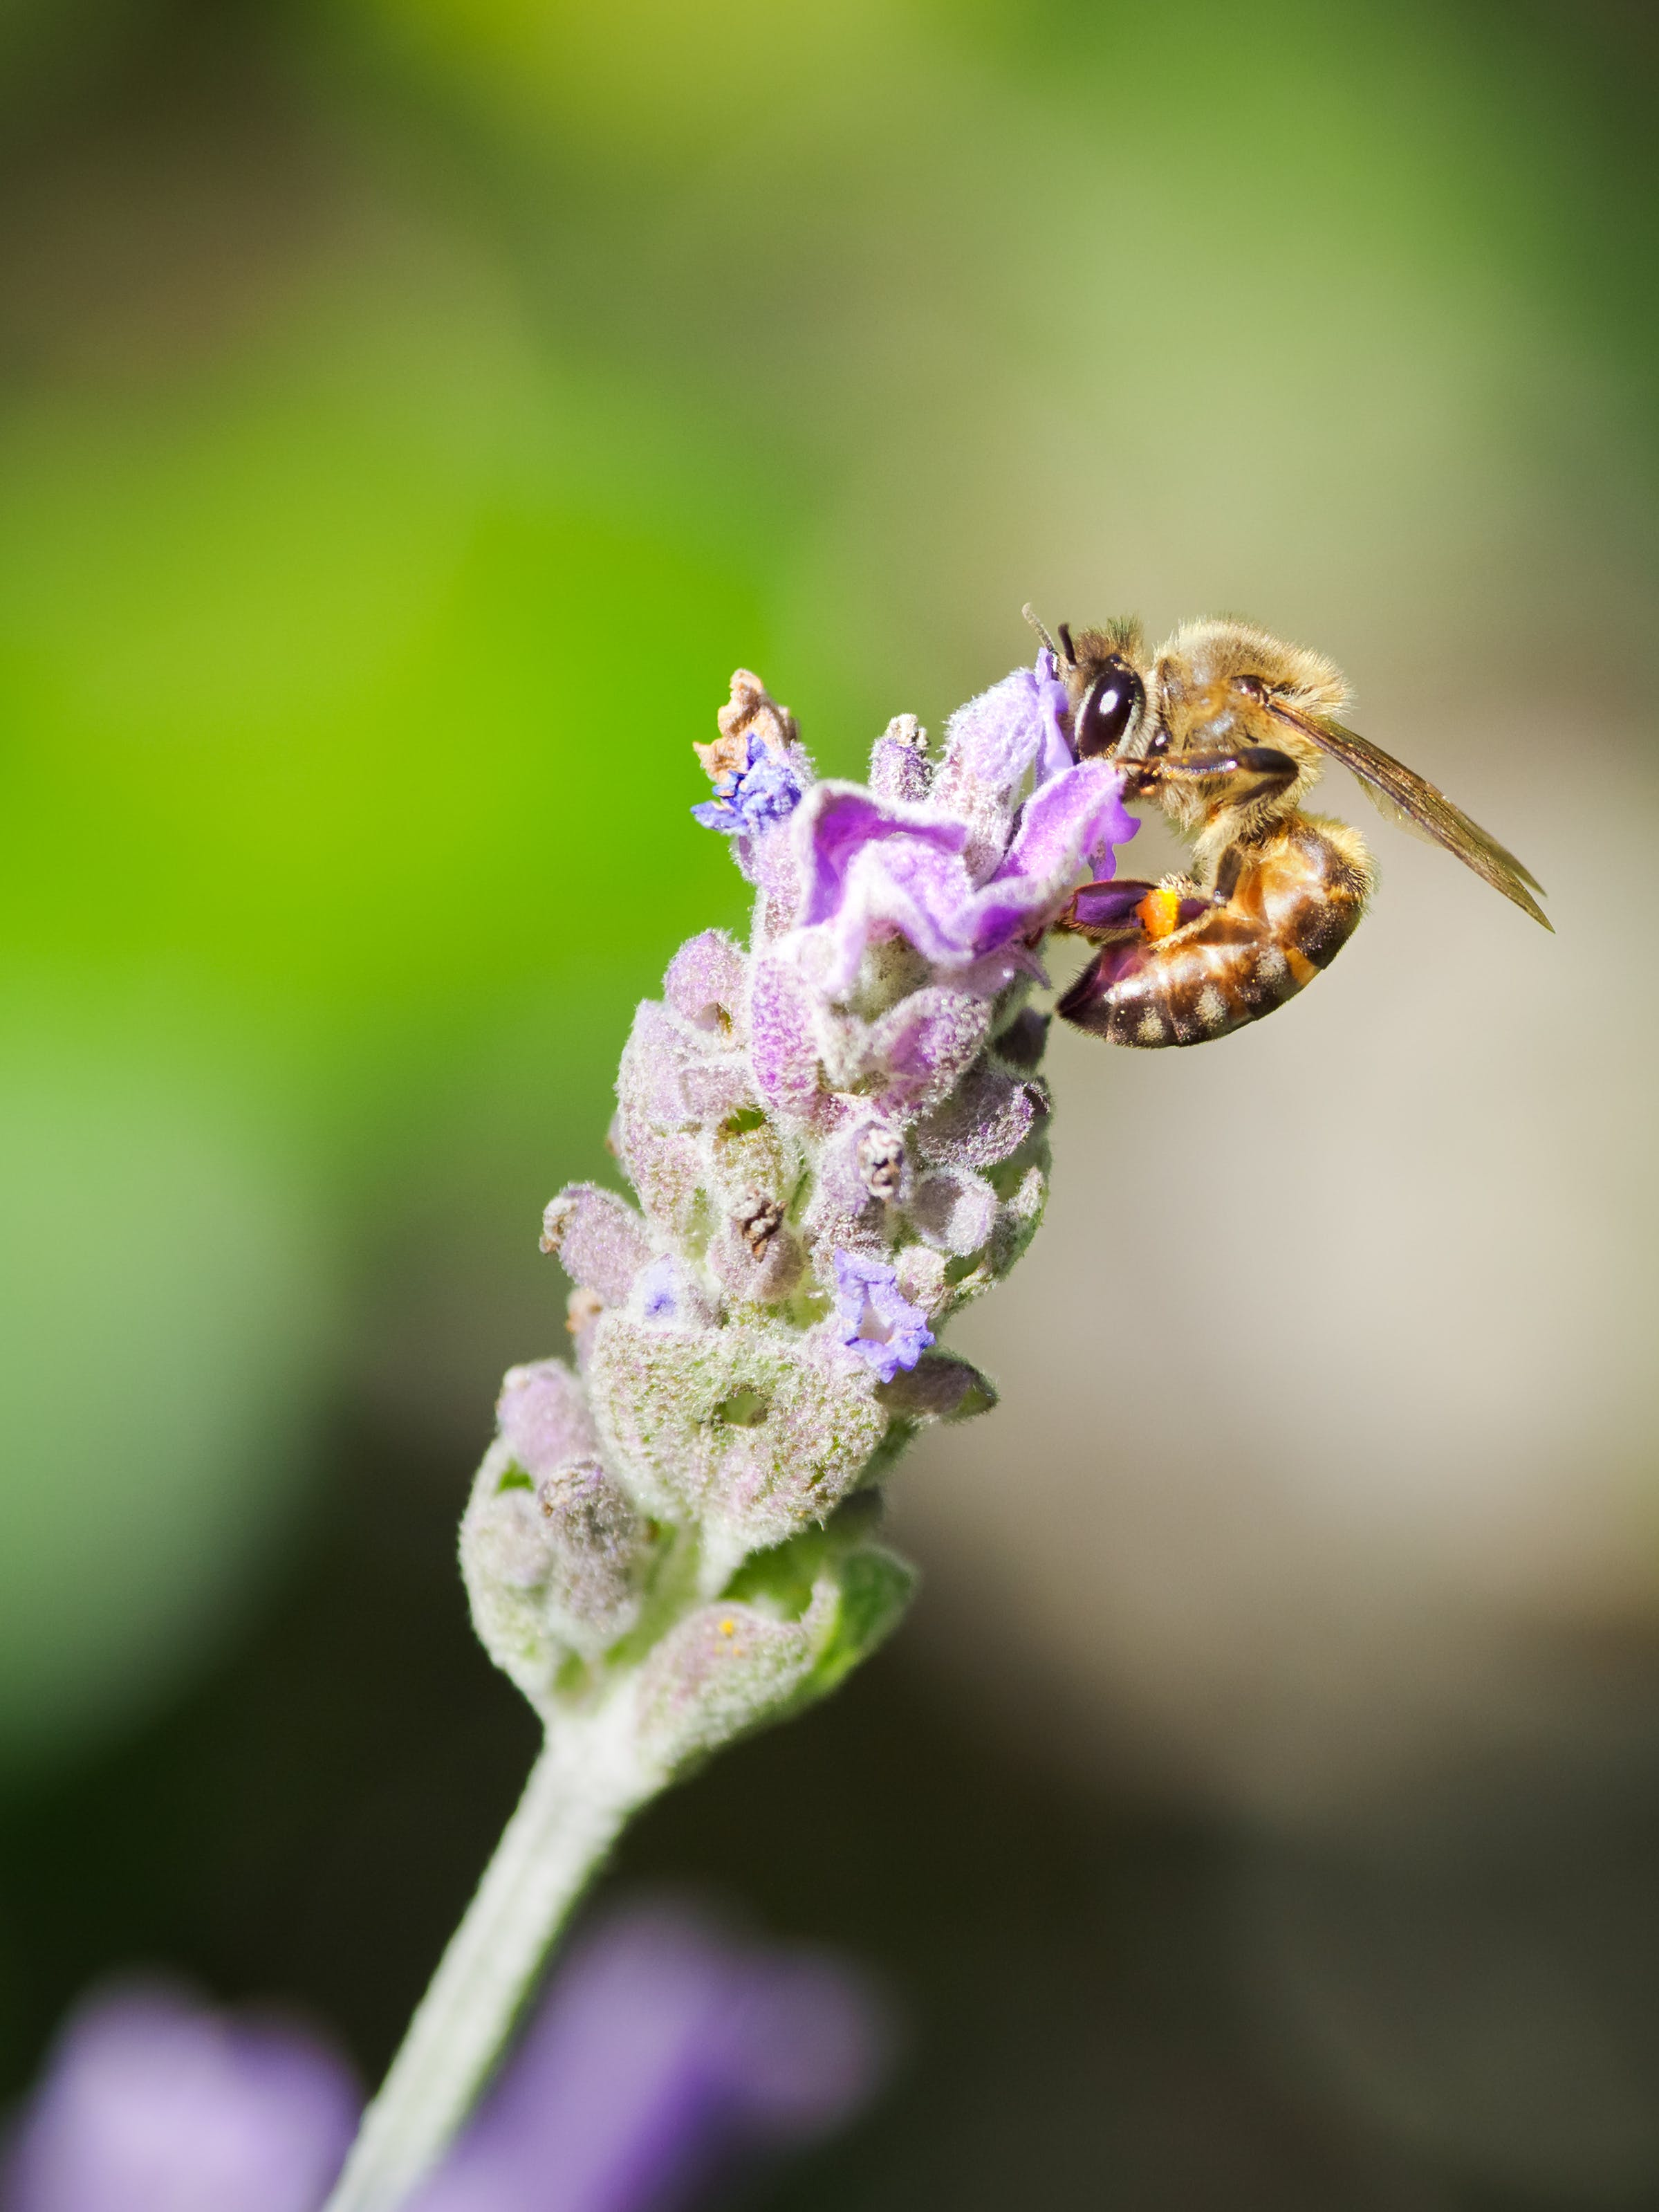 Close-Up Photo of Wasp On Flower